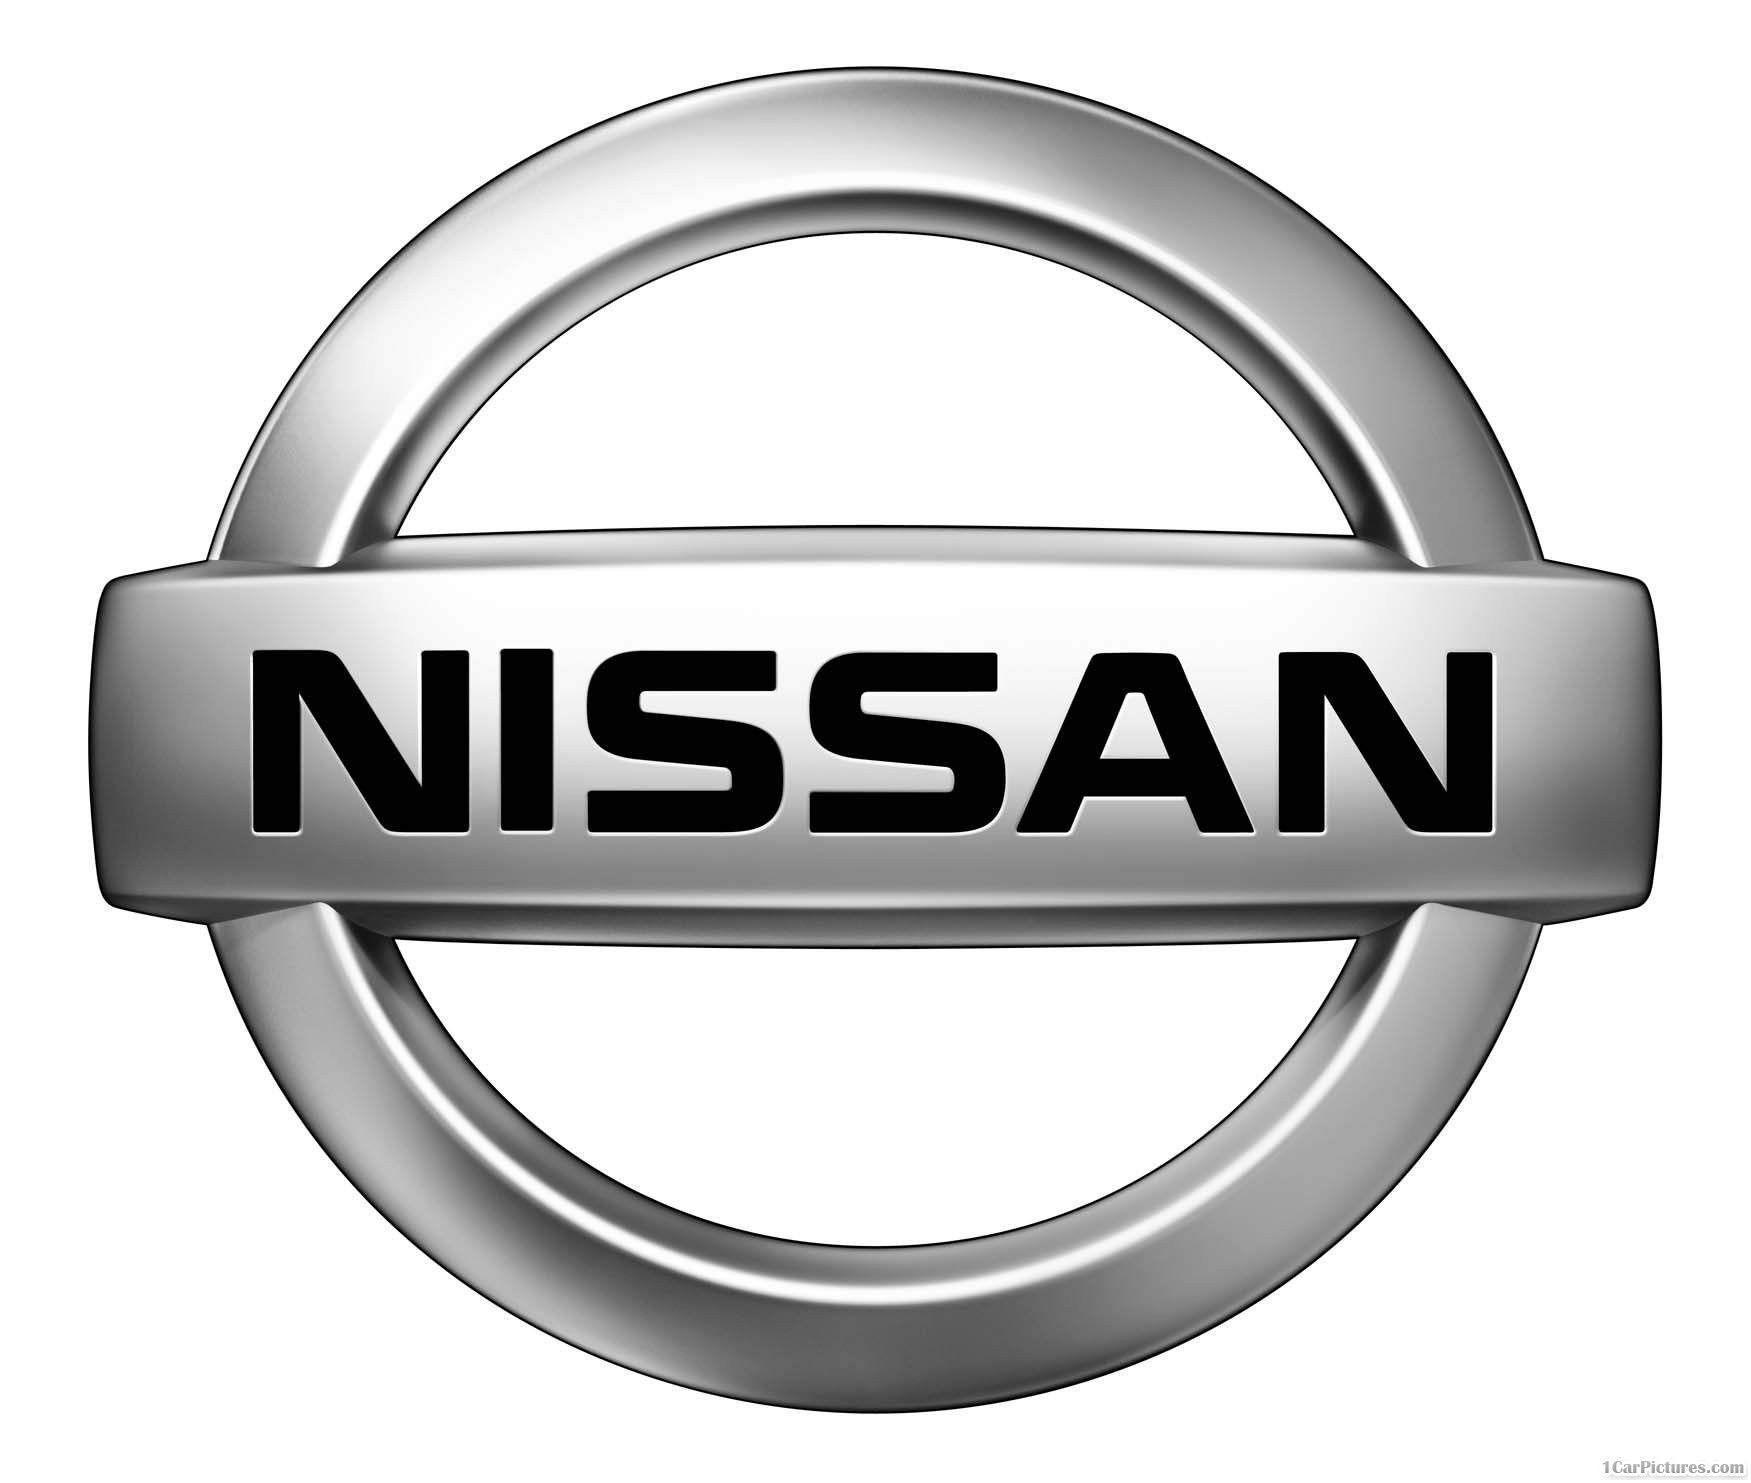 Nissan Logo Wallpaper 4305 Hd Wallpapers in Logos - Imagesci.com